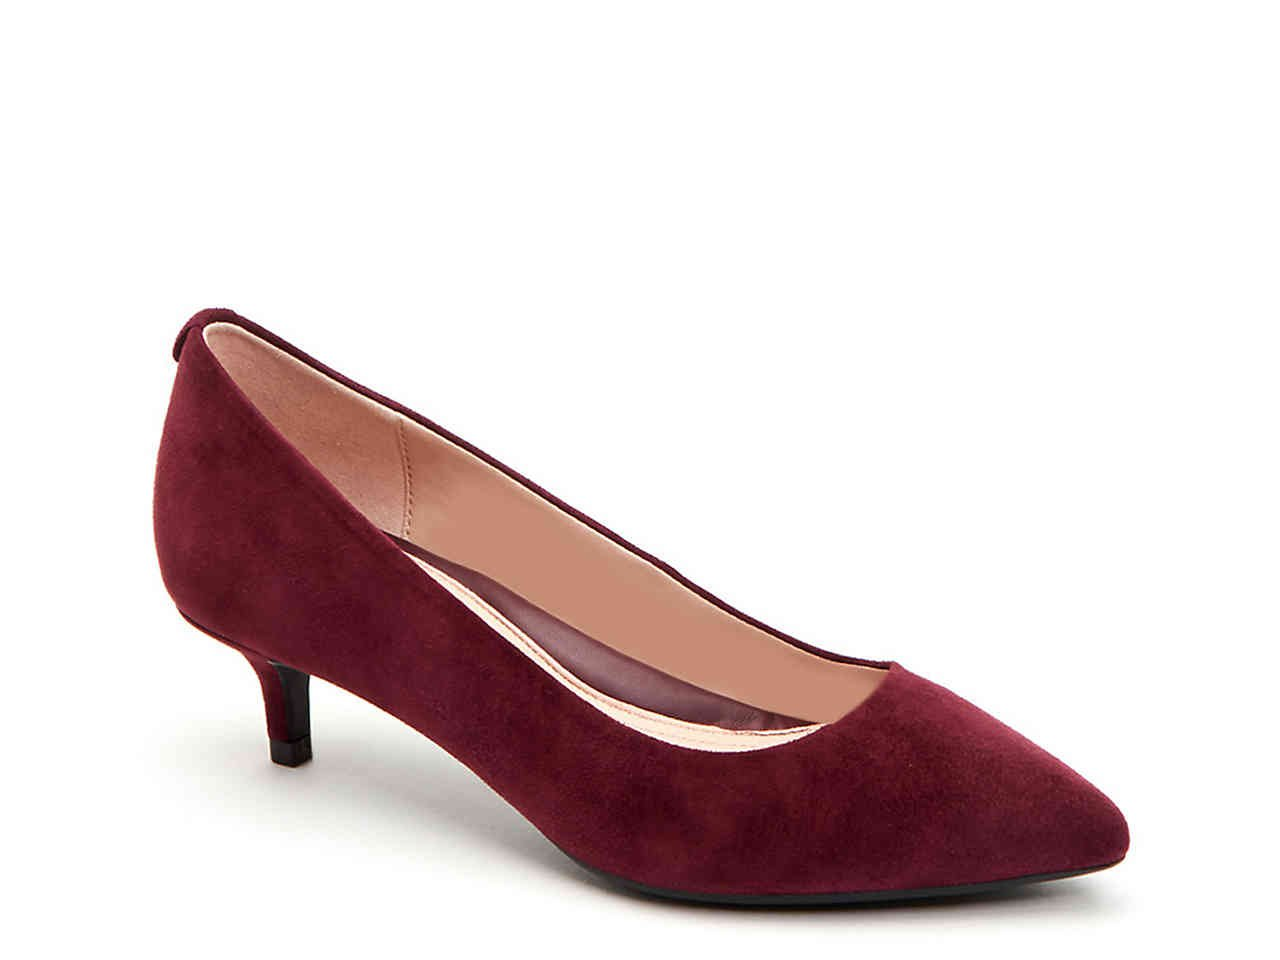 Taryn Rose Naomi Pump Women's Shoes | DSW